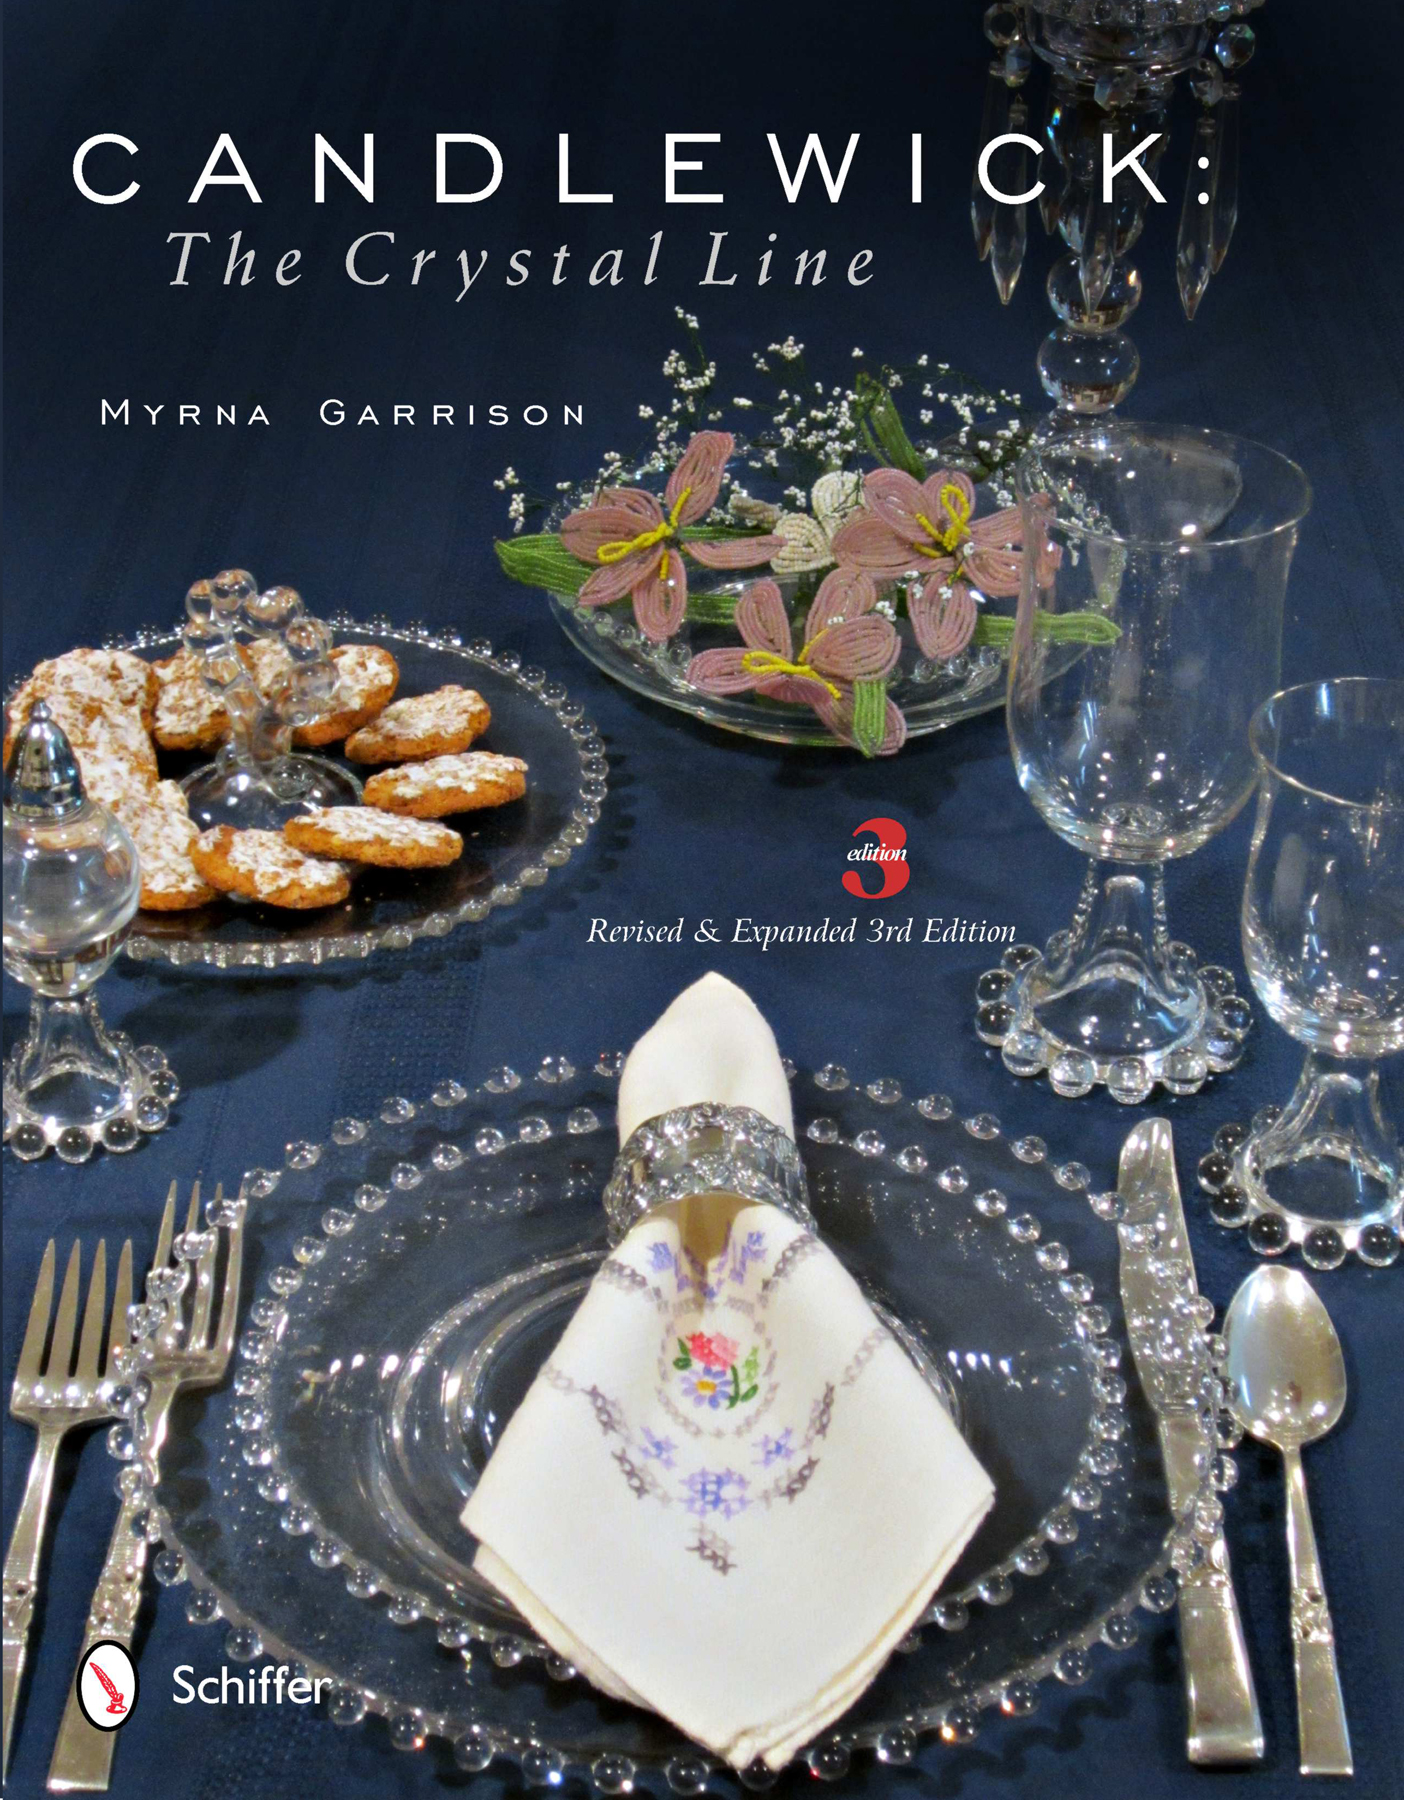 Candlewick: The Crystal Line 3rd Edition